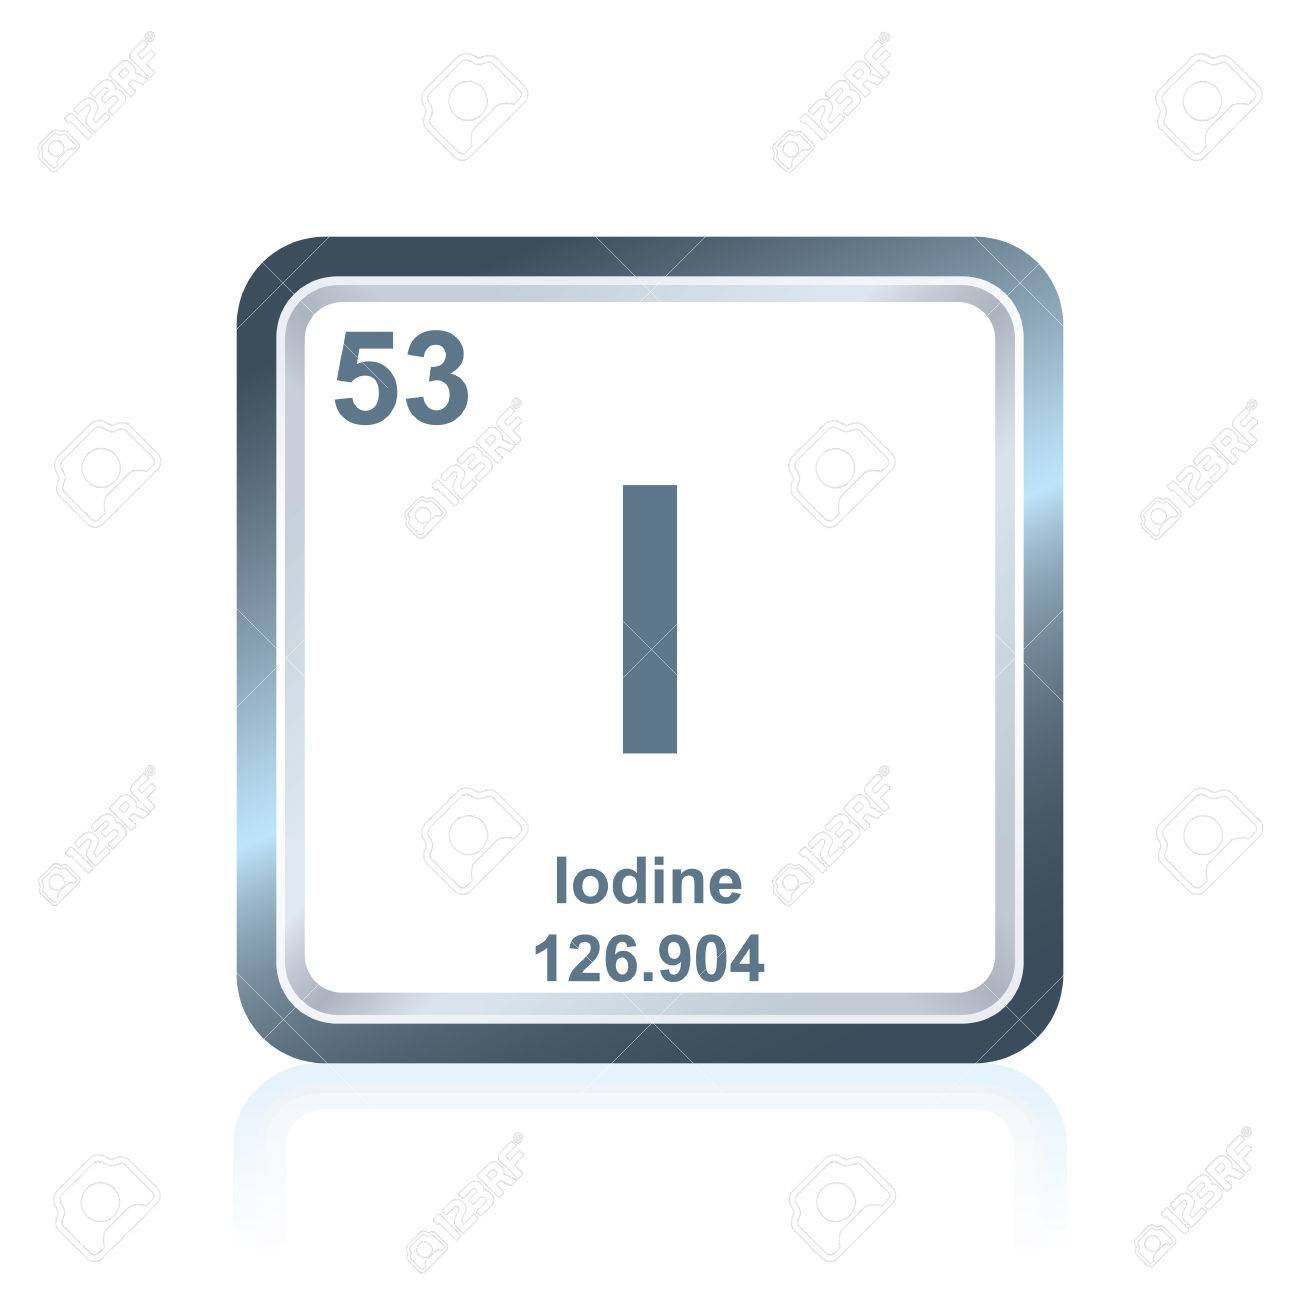 Yttrium periodic table elements stock electric heat wire factory periodic table yttrium image collections periodic table images 80109390 symbol of chemical element iodine as seen gamestrikefo Gallery